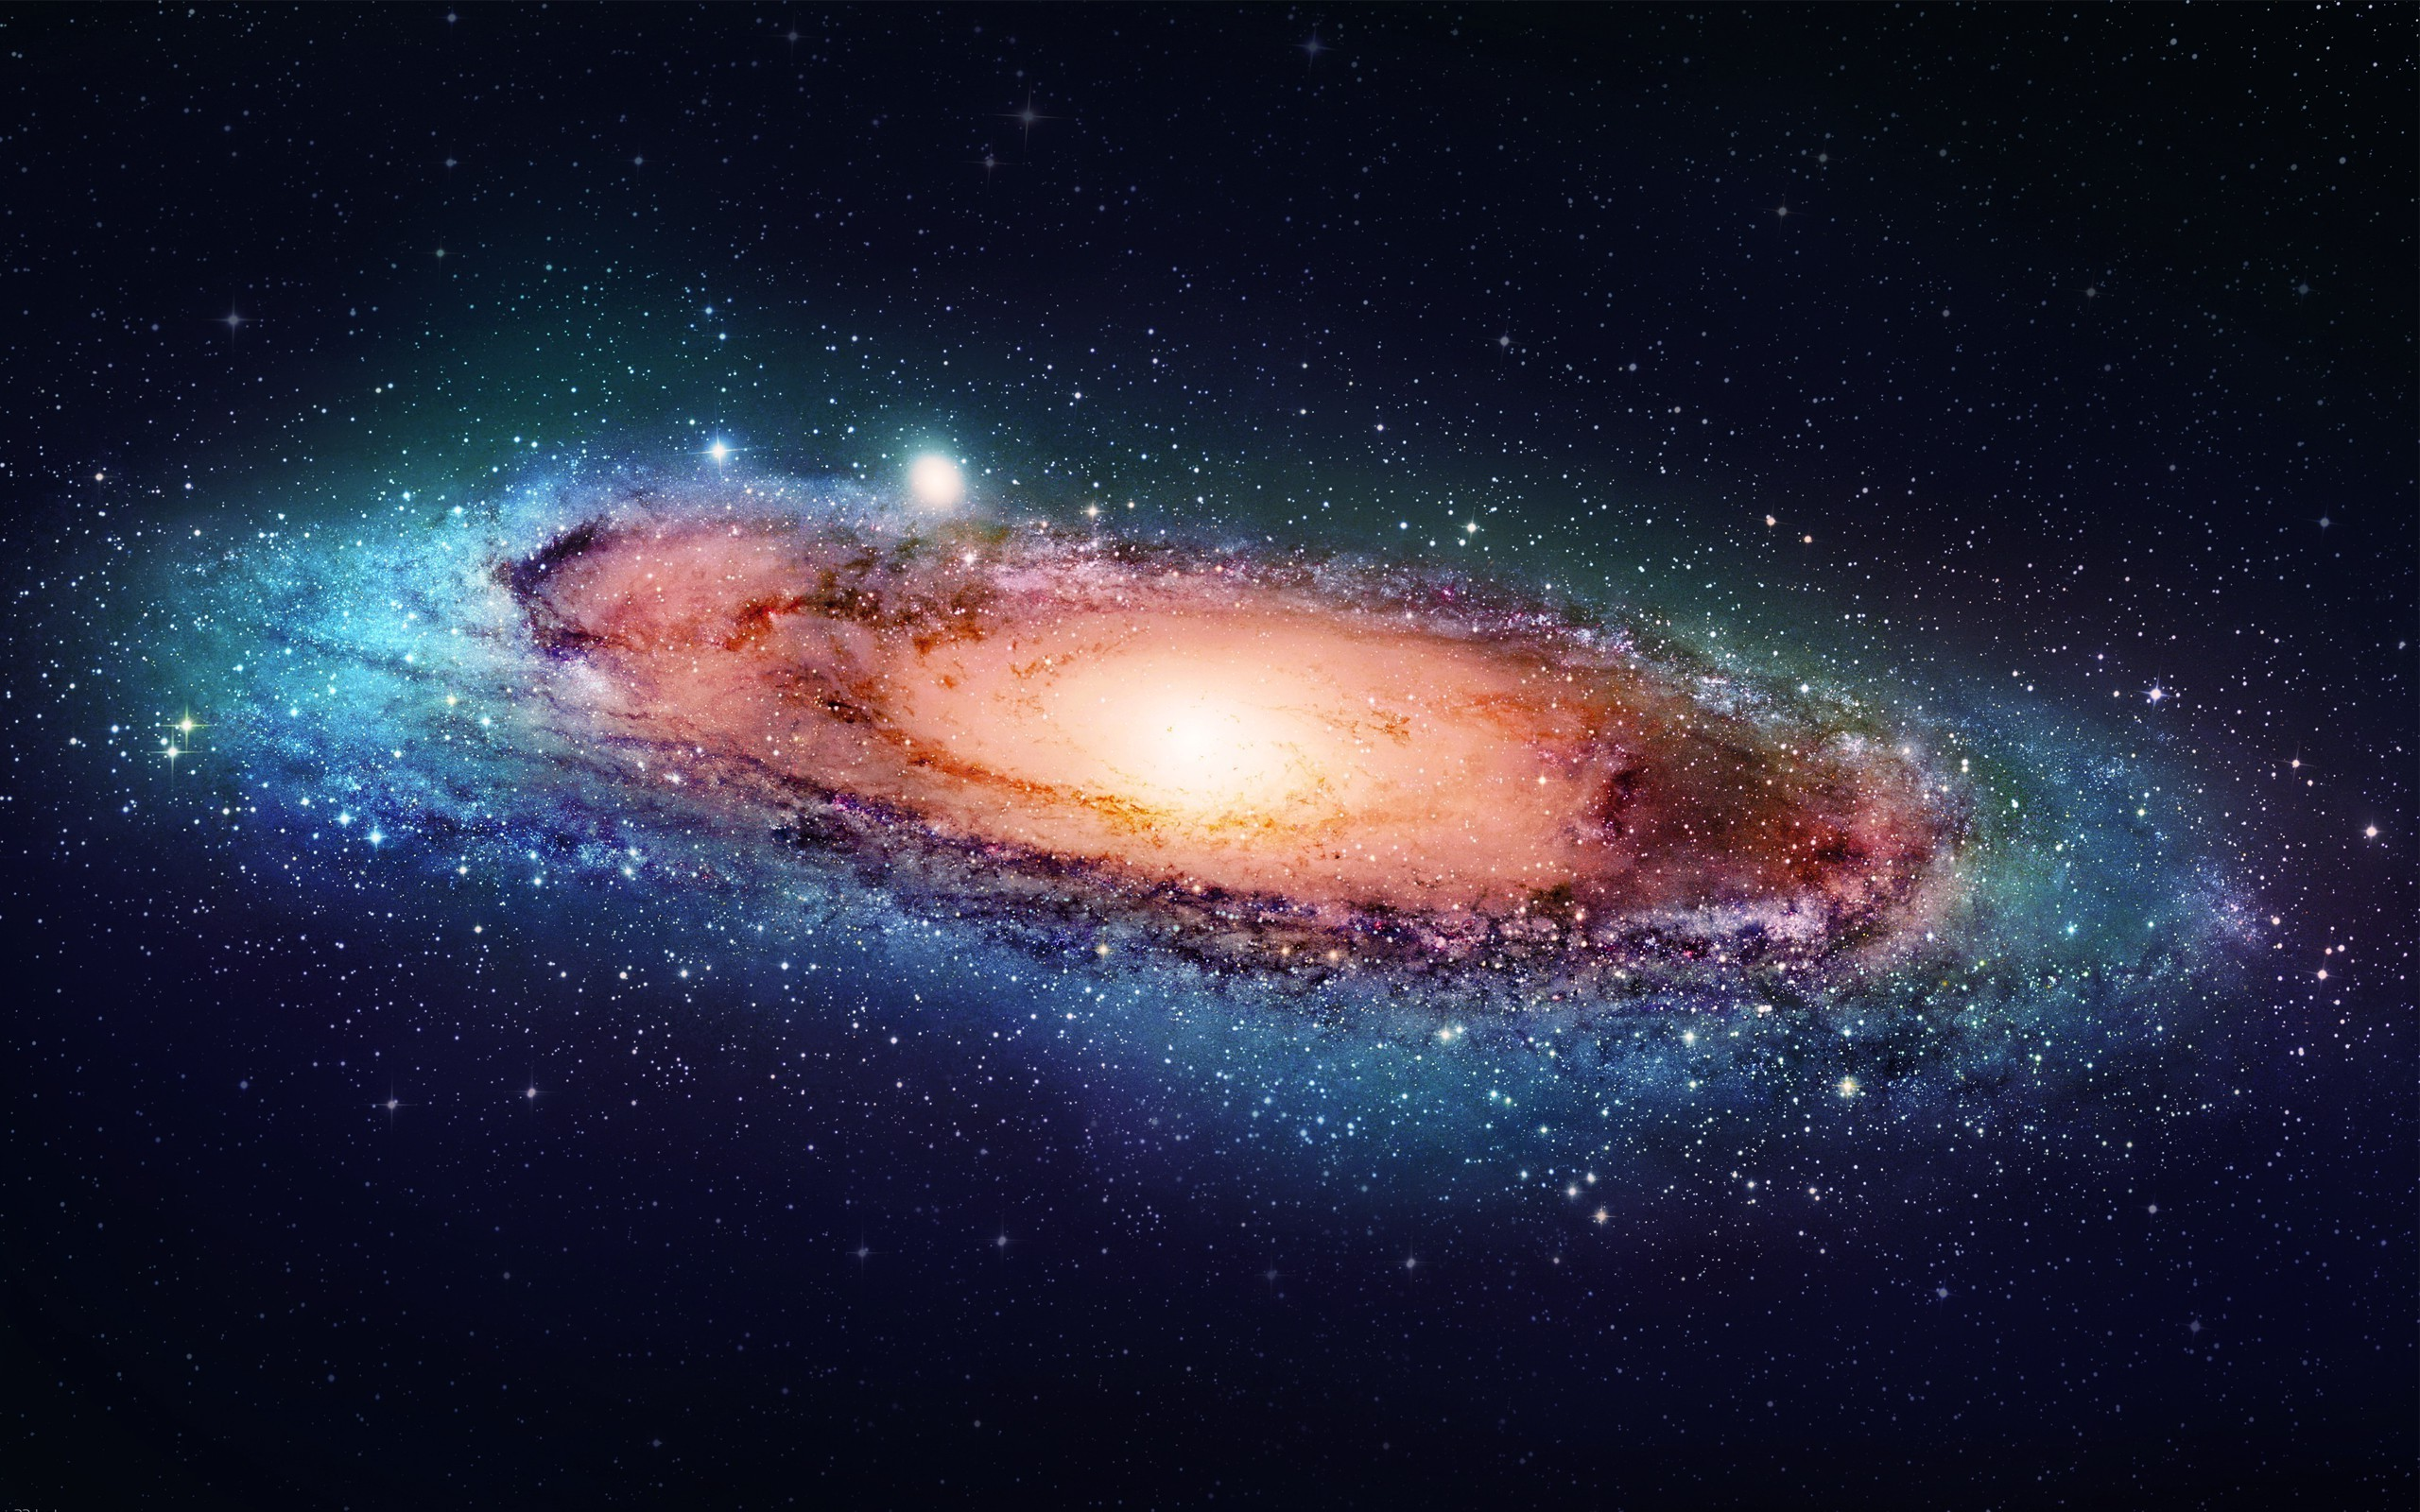 Andromeda galaxy wallpaper 15763 2560x1600